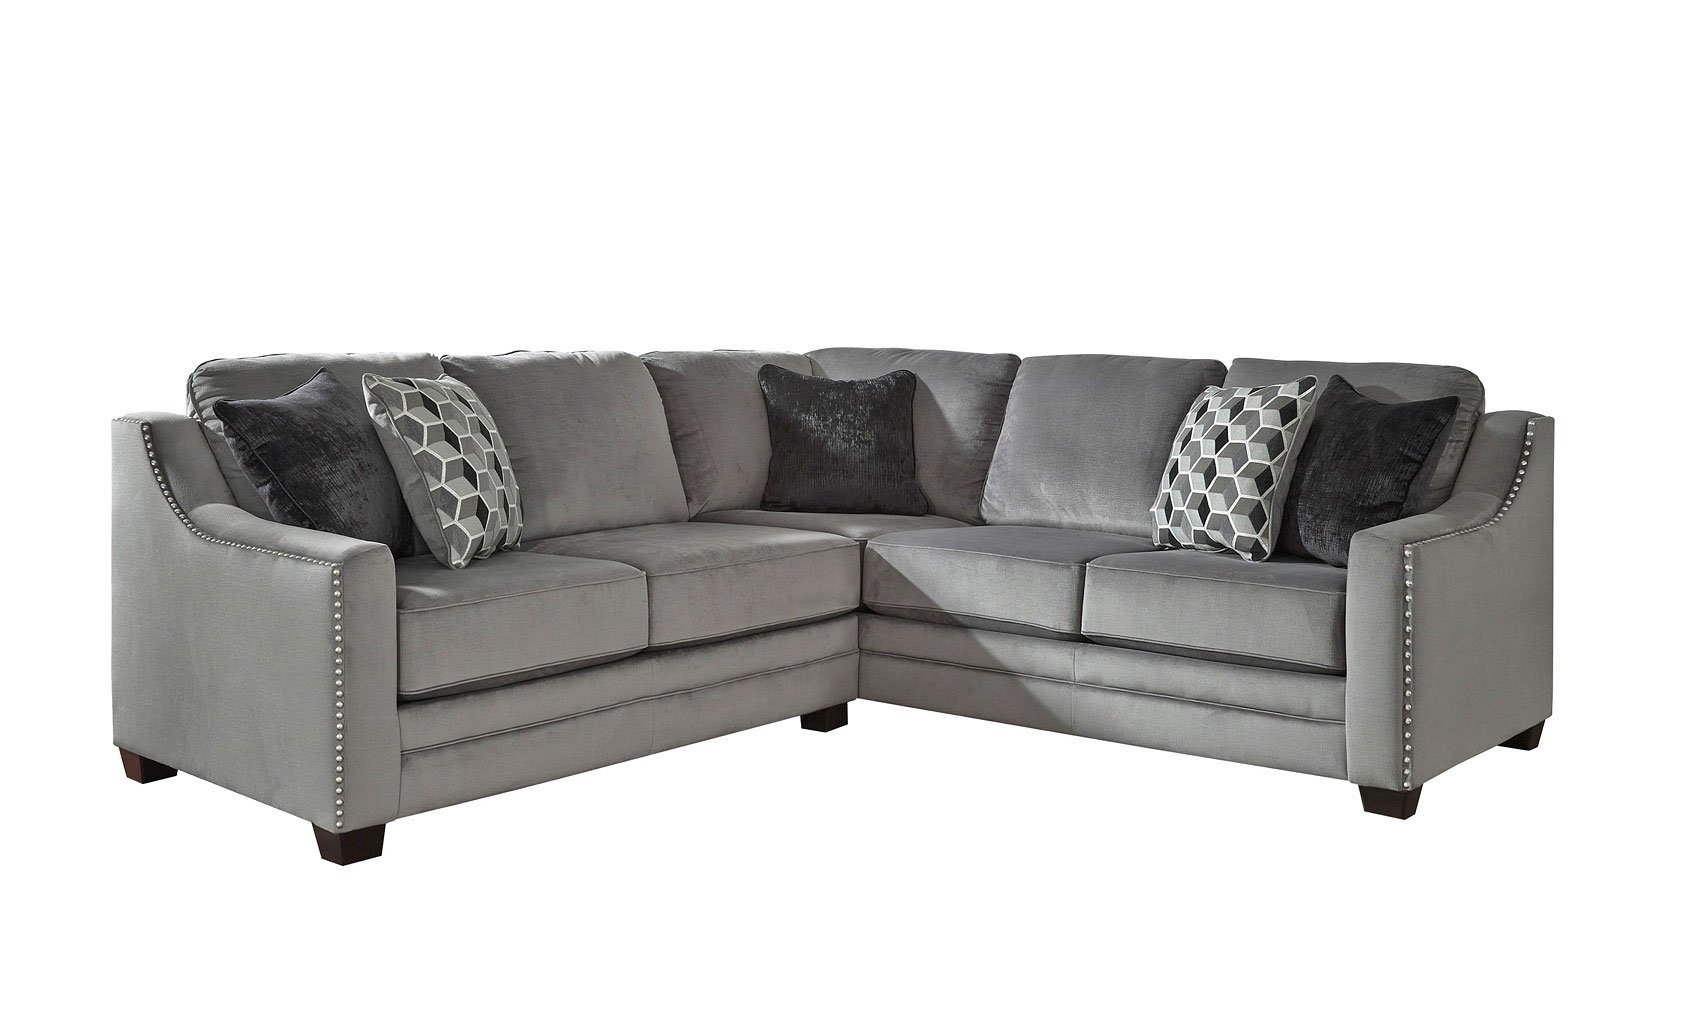 Loveseat Sectional   Whitecraftwoodard Mona Wicker Right Arm Pertaining To Turdur 2 Piece Sectionals With Raf Loveseat (View 21 of 25)